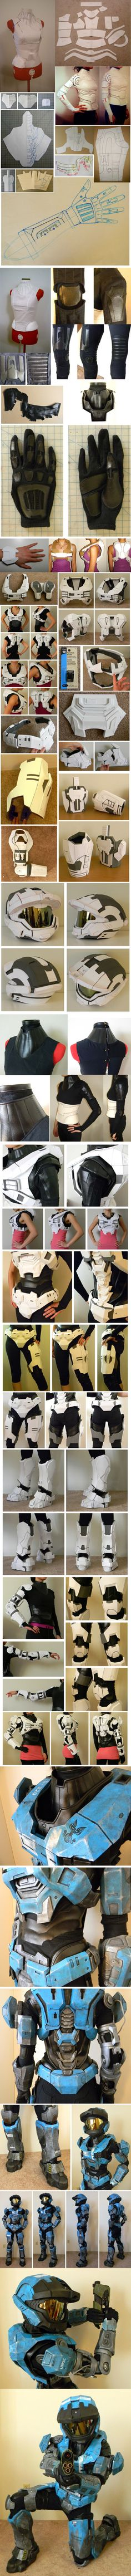 """Kat Armor build with Custom Undersuit"" by LilTyrant ~ this is what hard work looks like."